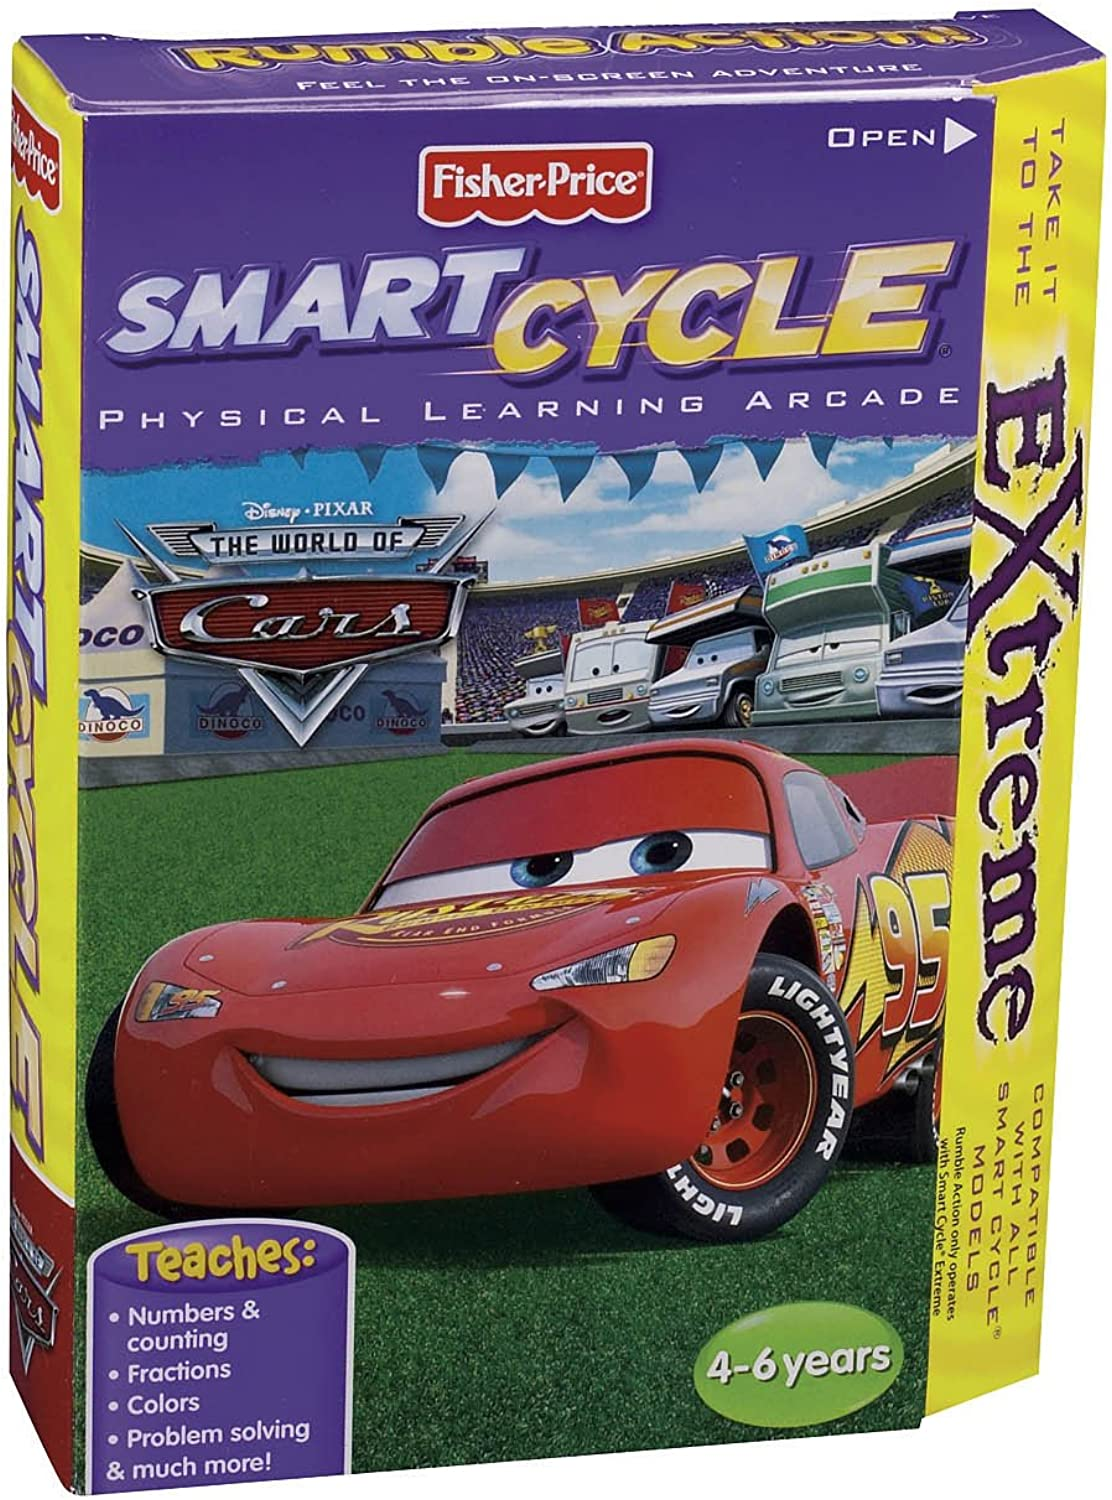 FisherPrice Smart Cycle Extreme The World of Cars